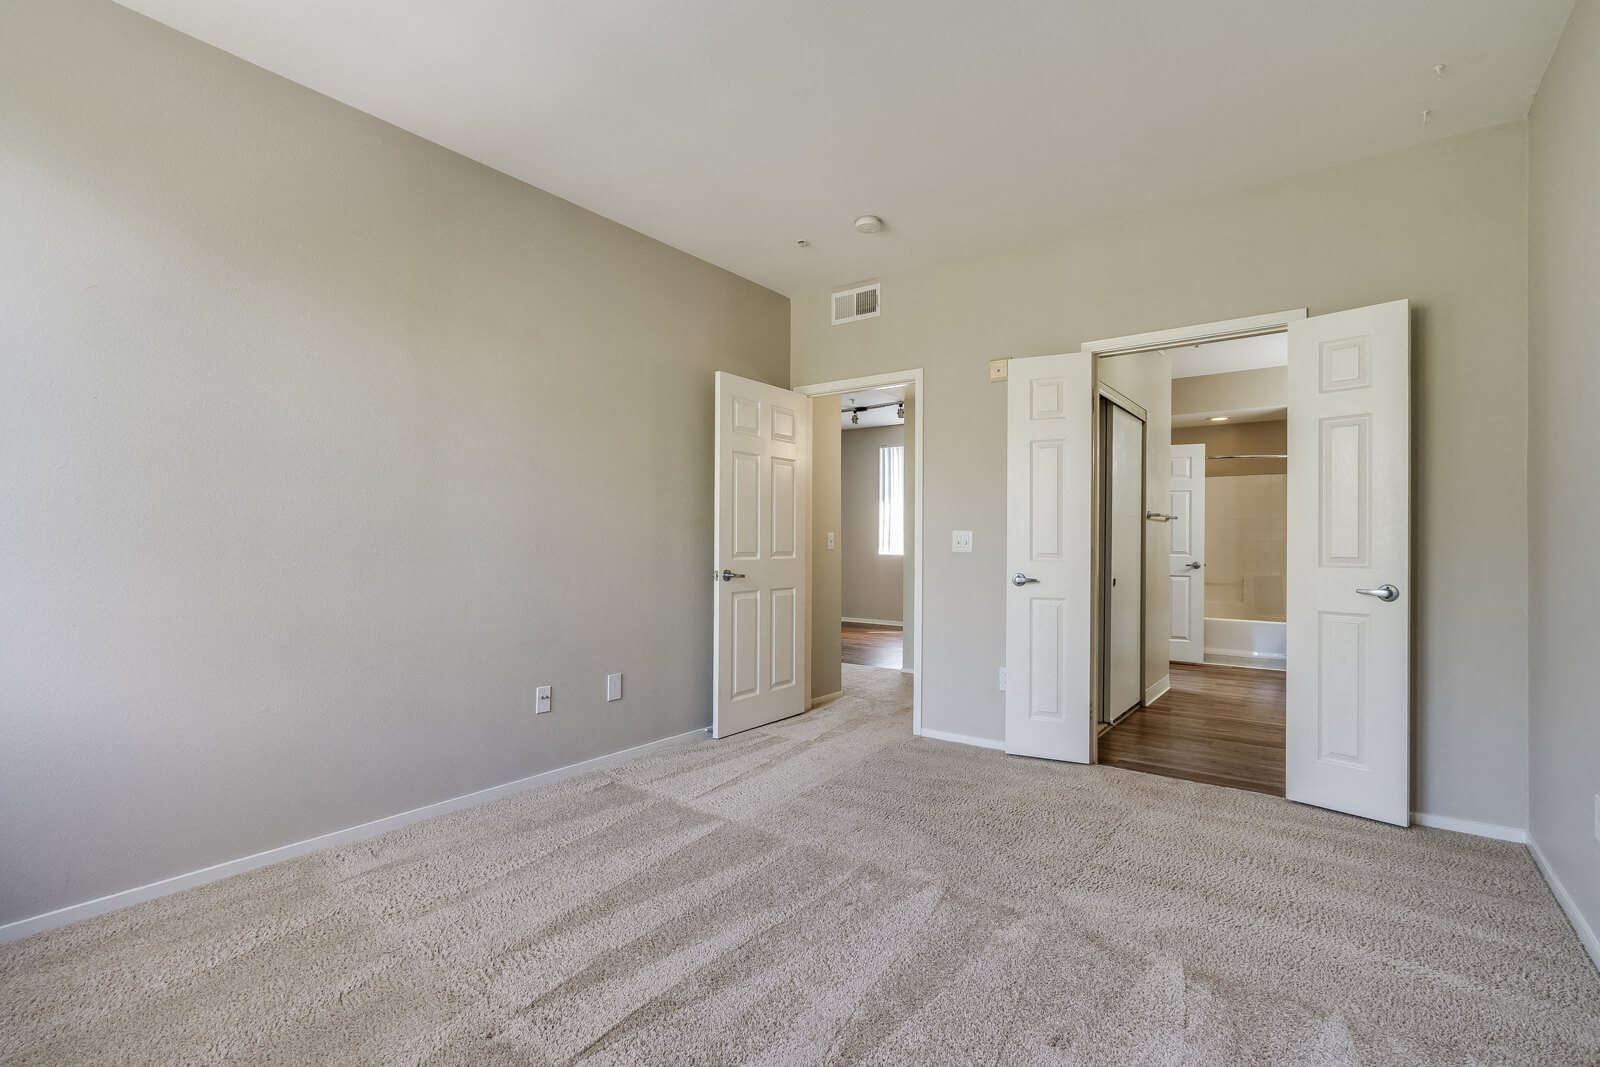 Wall-To-Wall Carpeting in Spacious Bedroom at Pavona Apartments, San Jose, CA